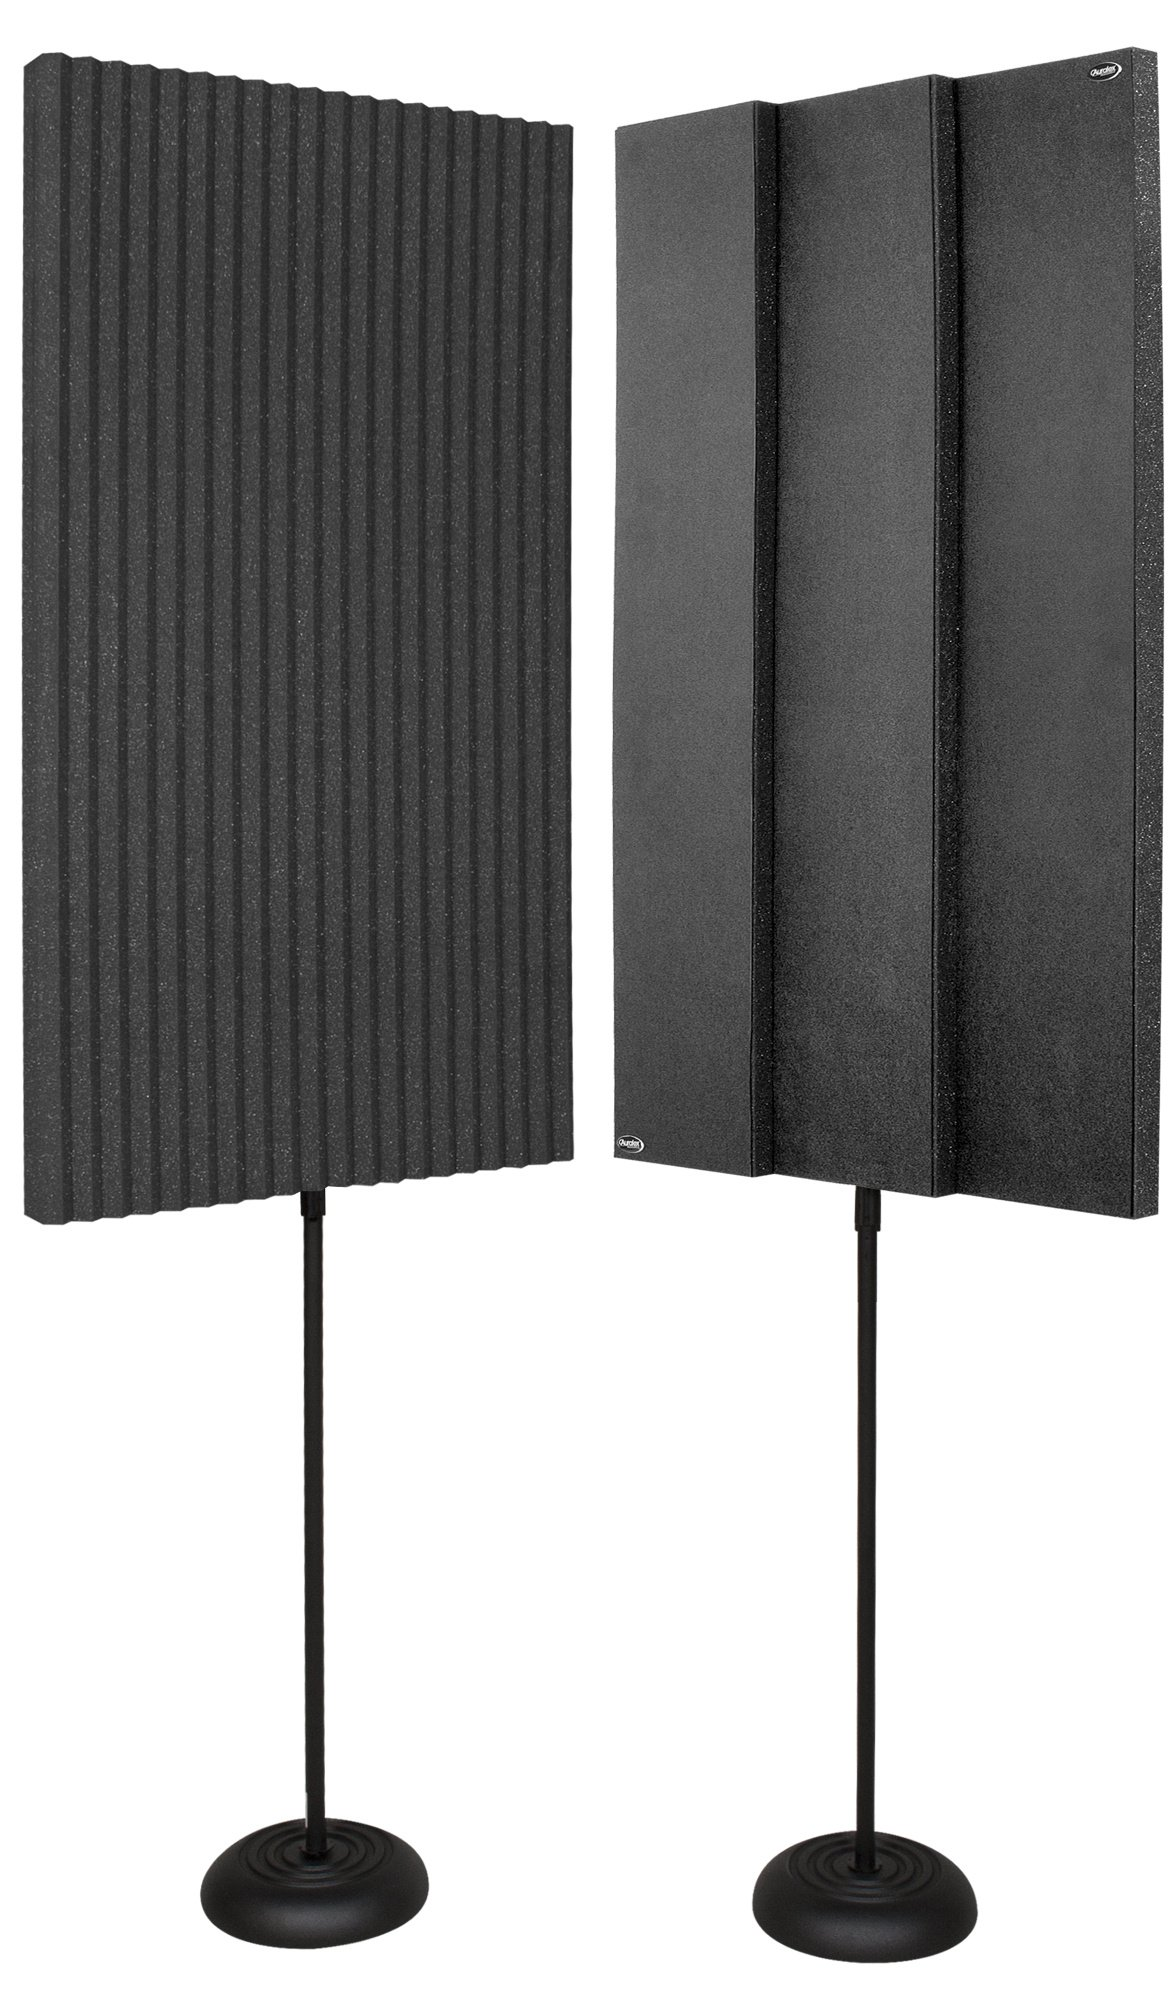 "(2) 3"" x 24"" x 48"" ProMAX V2 Panels with (2) Floor Stands"